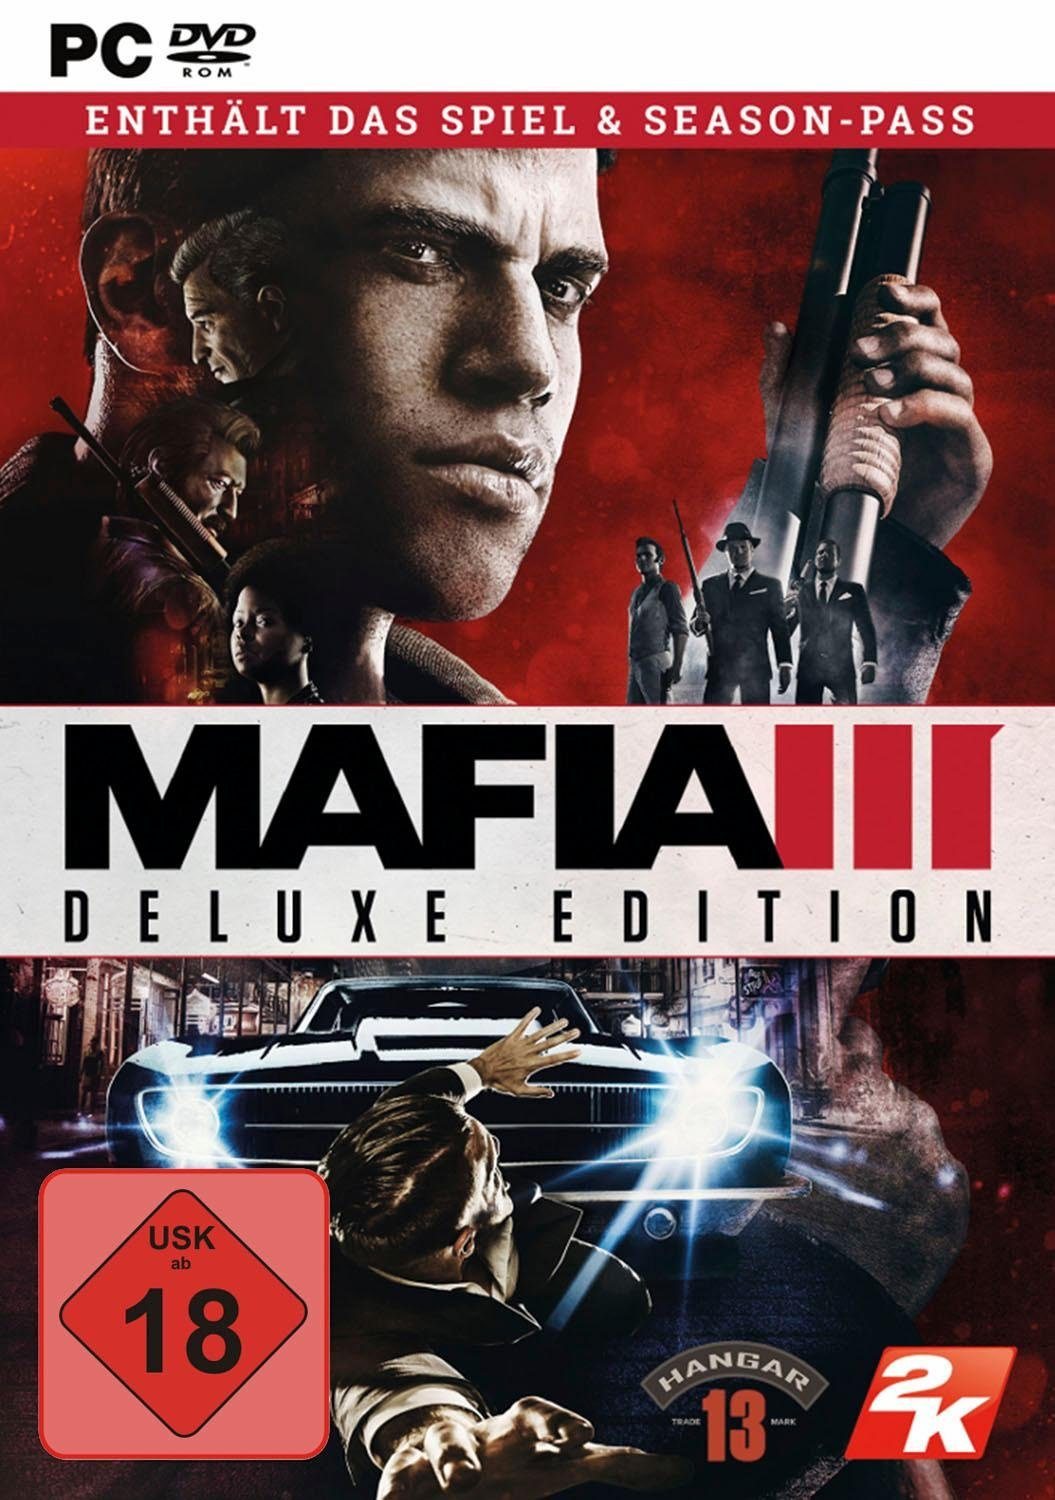 Mafia III Deluxe Edition PC